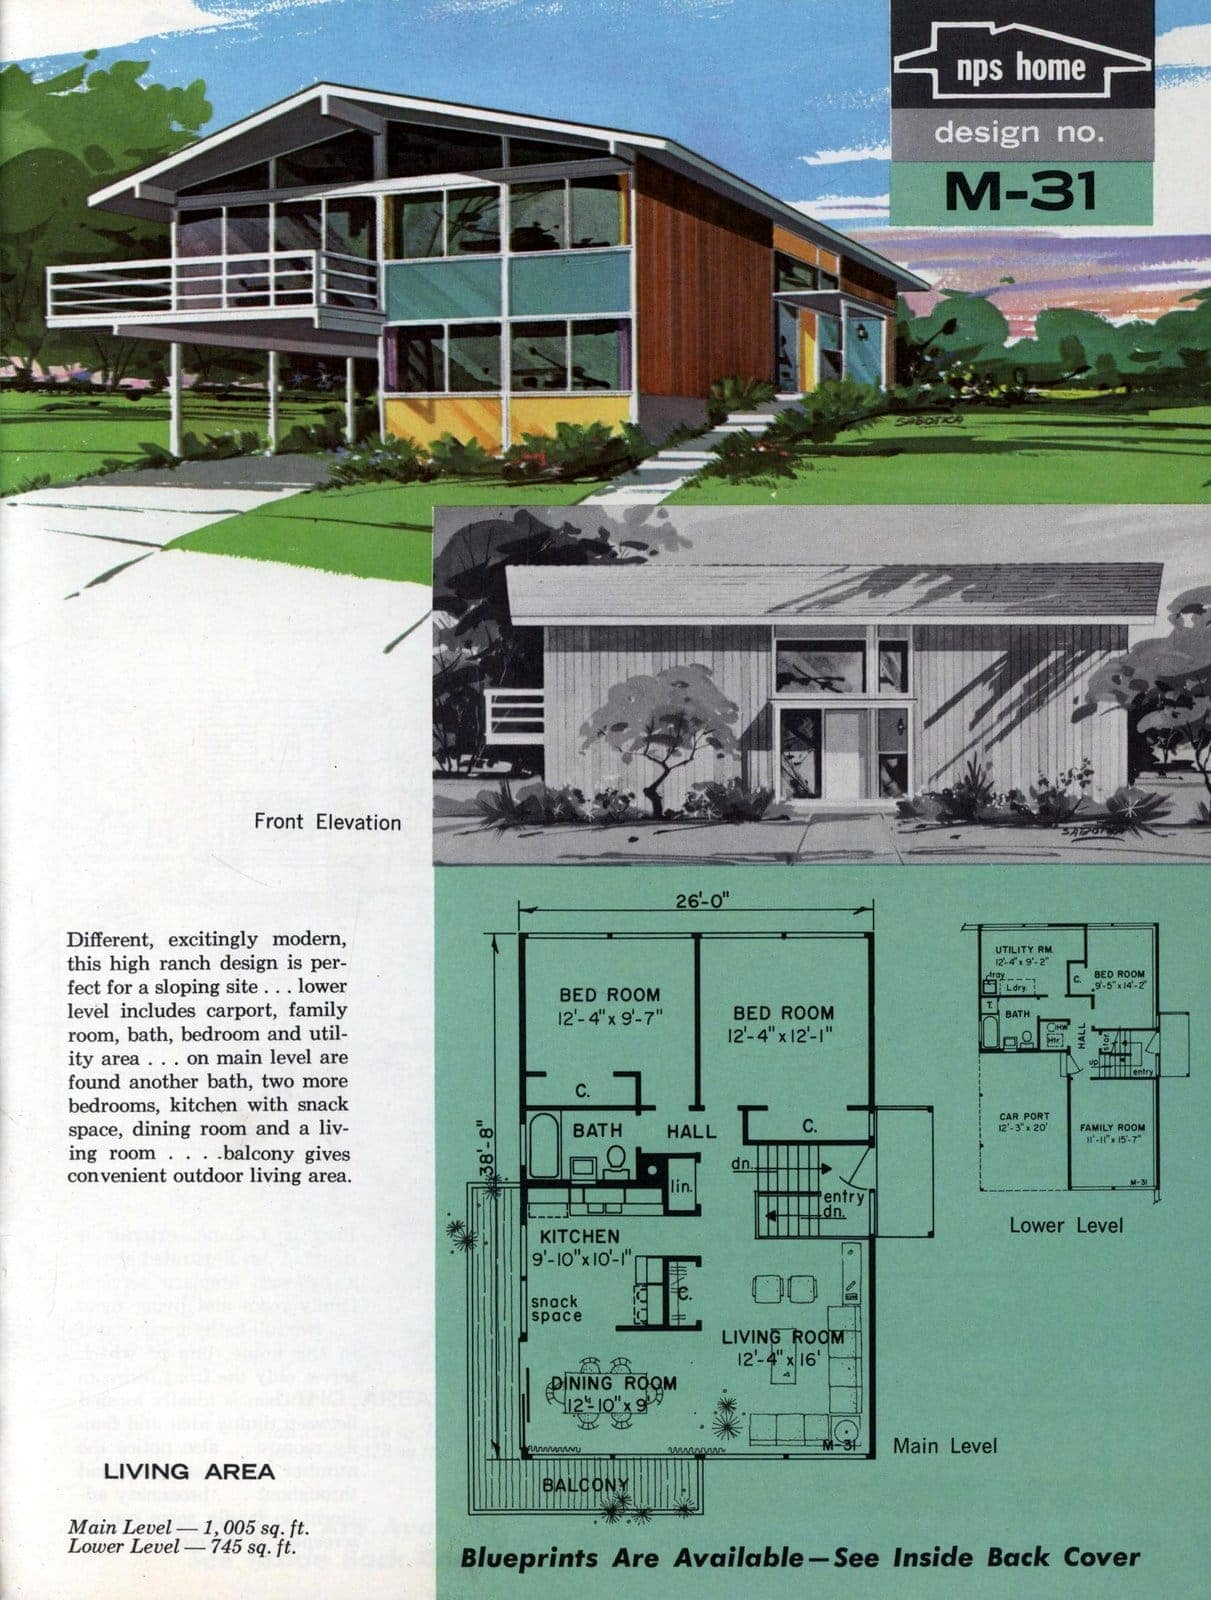 Vintage midcentury home plans from 1963 (3)